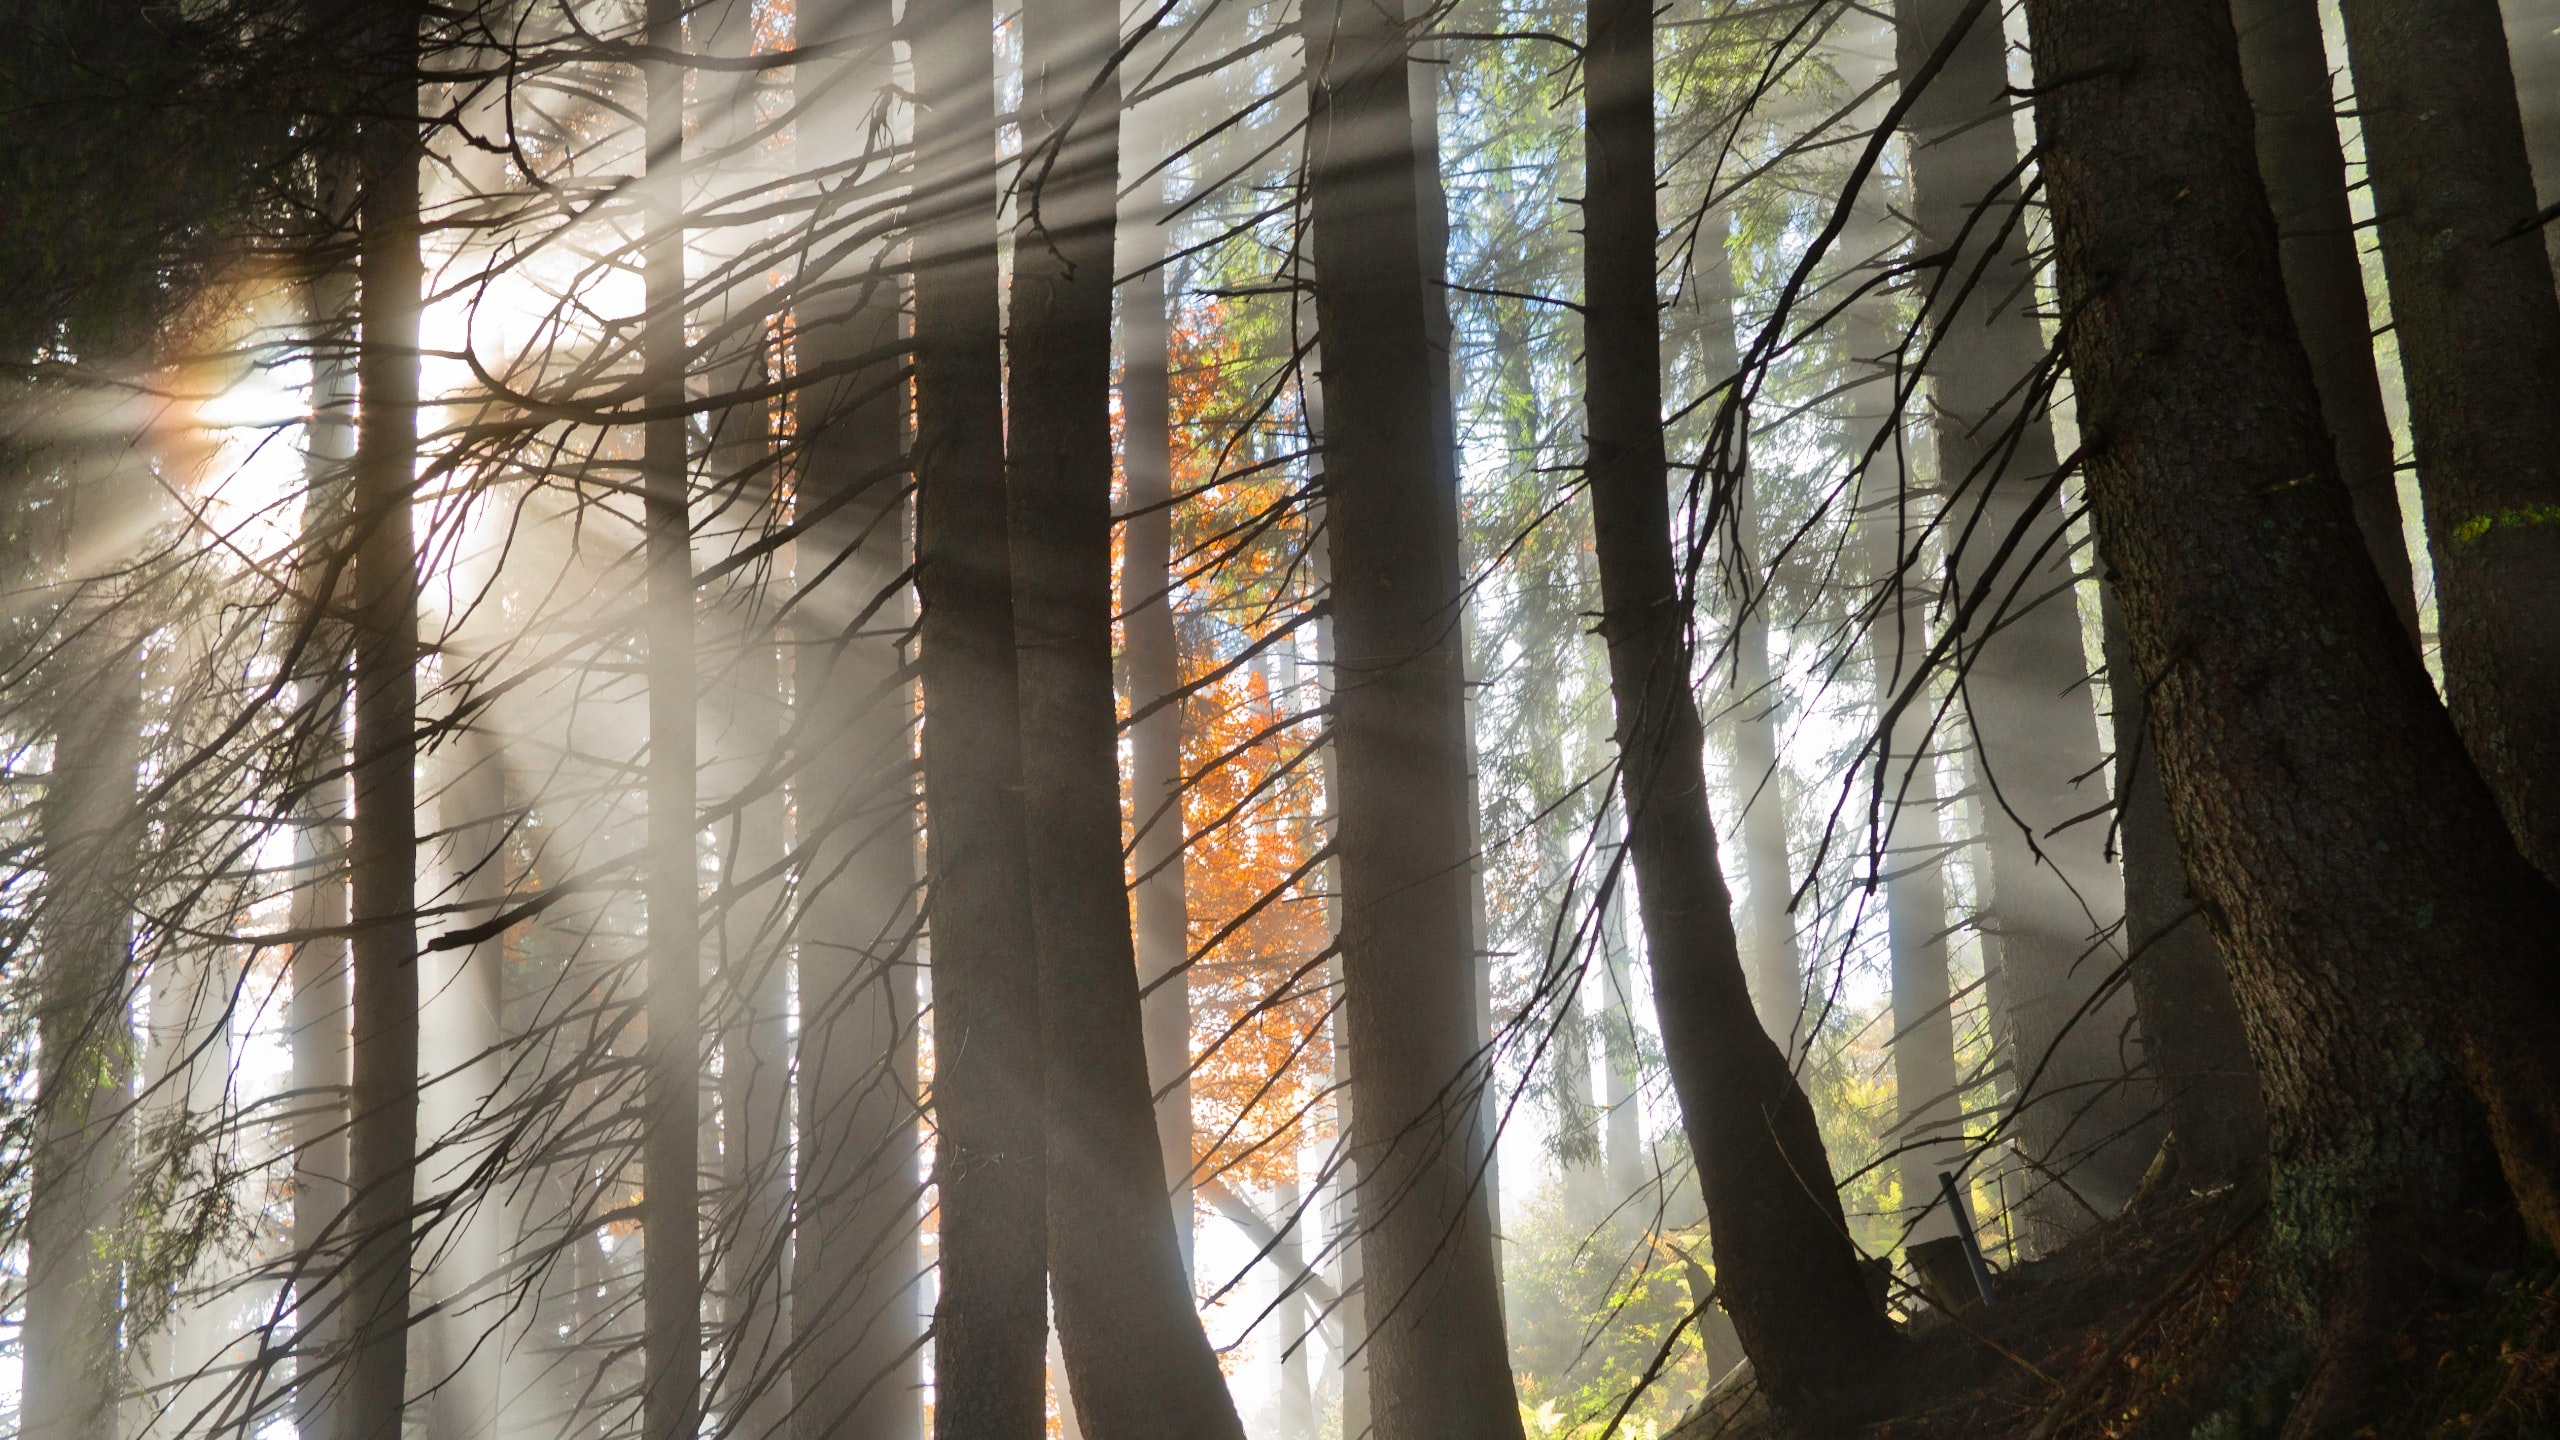 landscape photography of forest with sunlight passes through